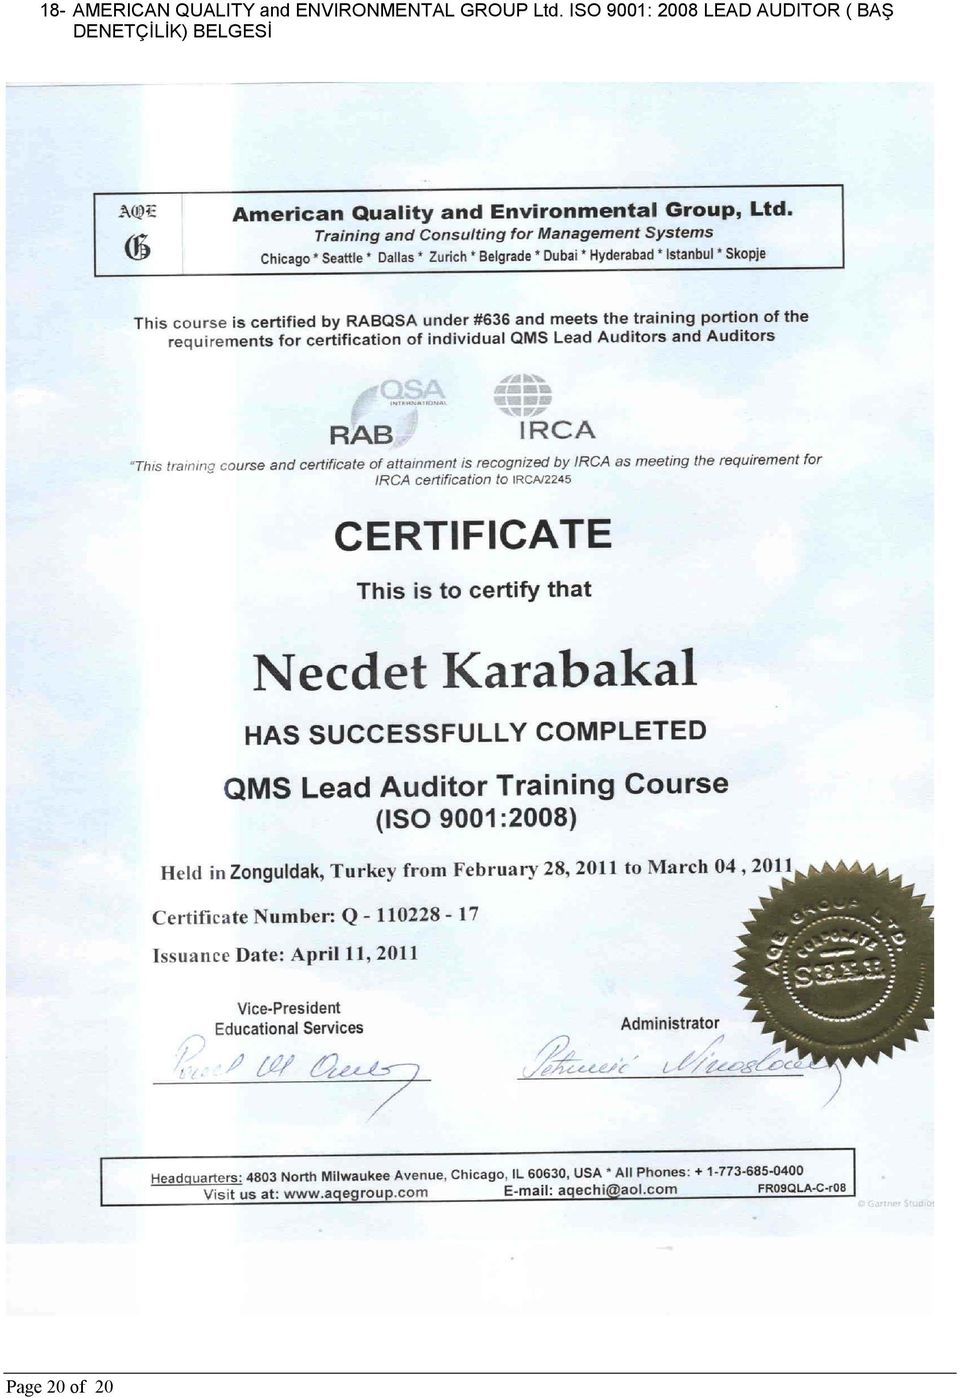 ISO 9001: 2008 LEAD AUDITOR (